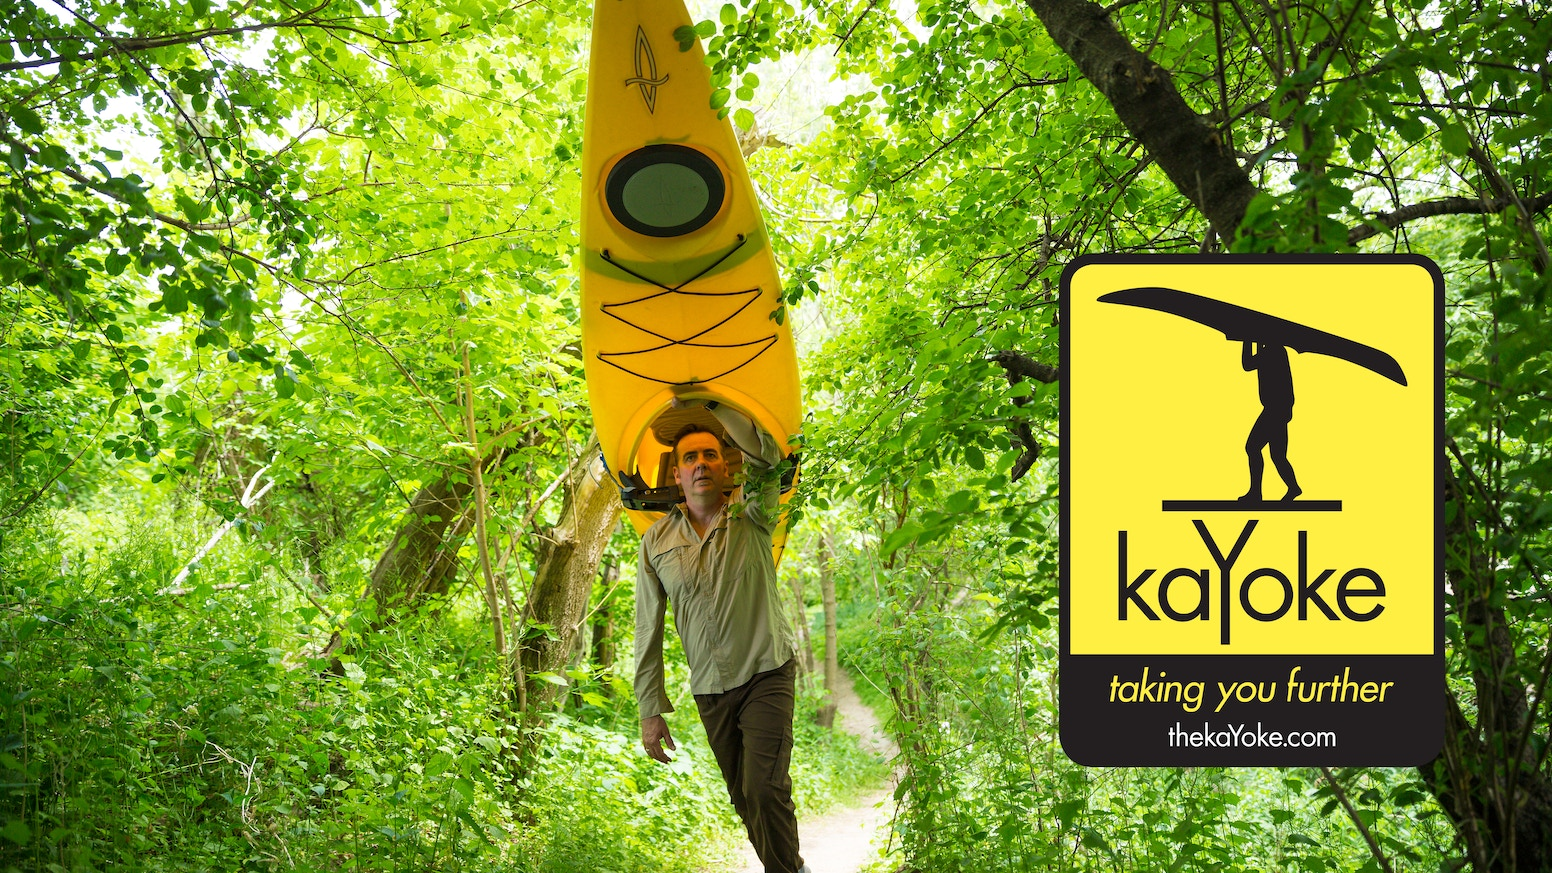 KaYoke - a lightweight, compact system to transport a kayak  by